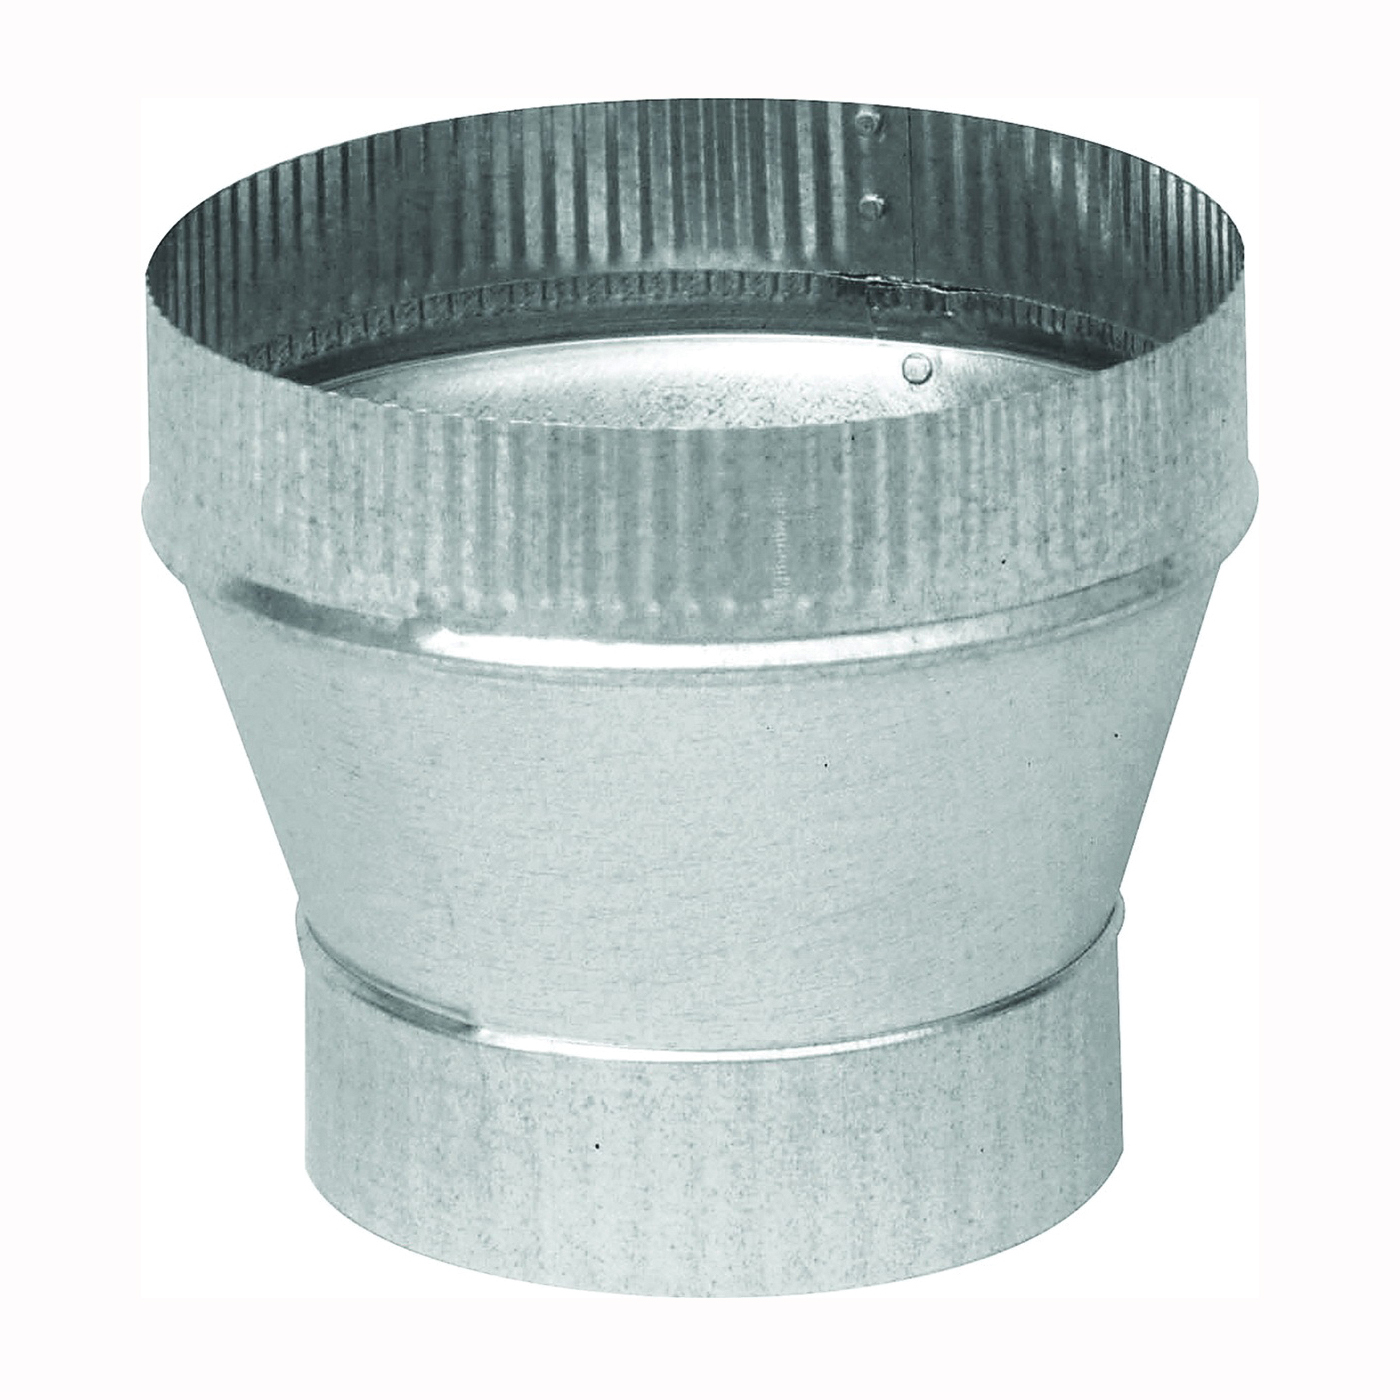 Picture of Imperial GV1360 Furnace Short Increaser, 6 to 8 in Connection, 24 Gauge, Galvanized